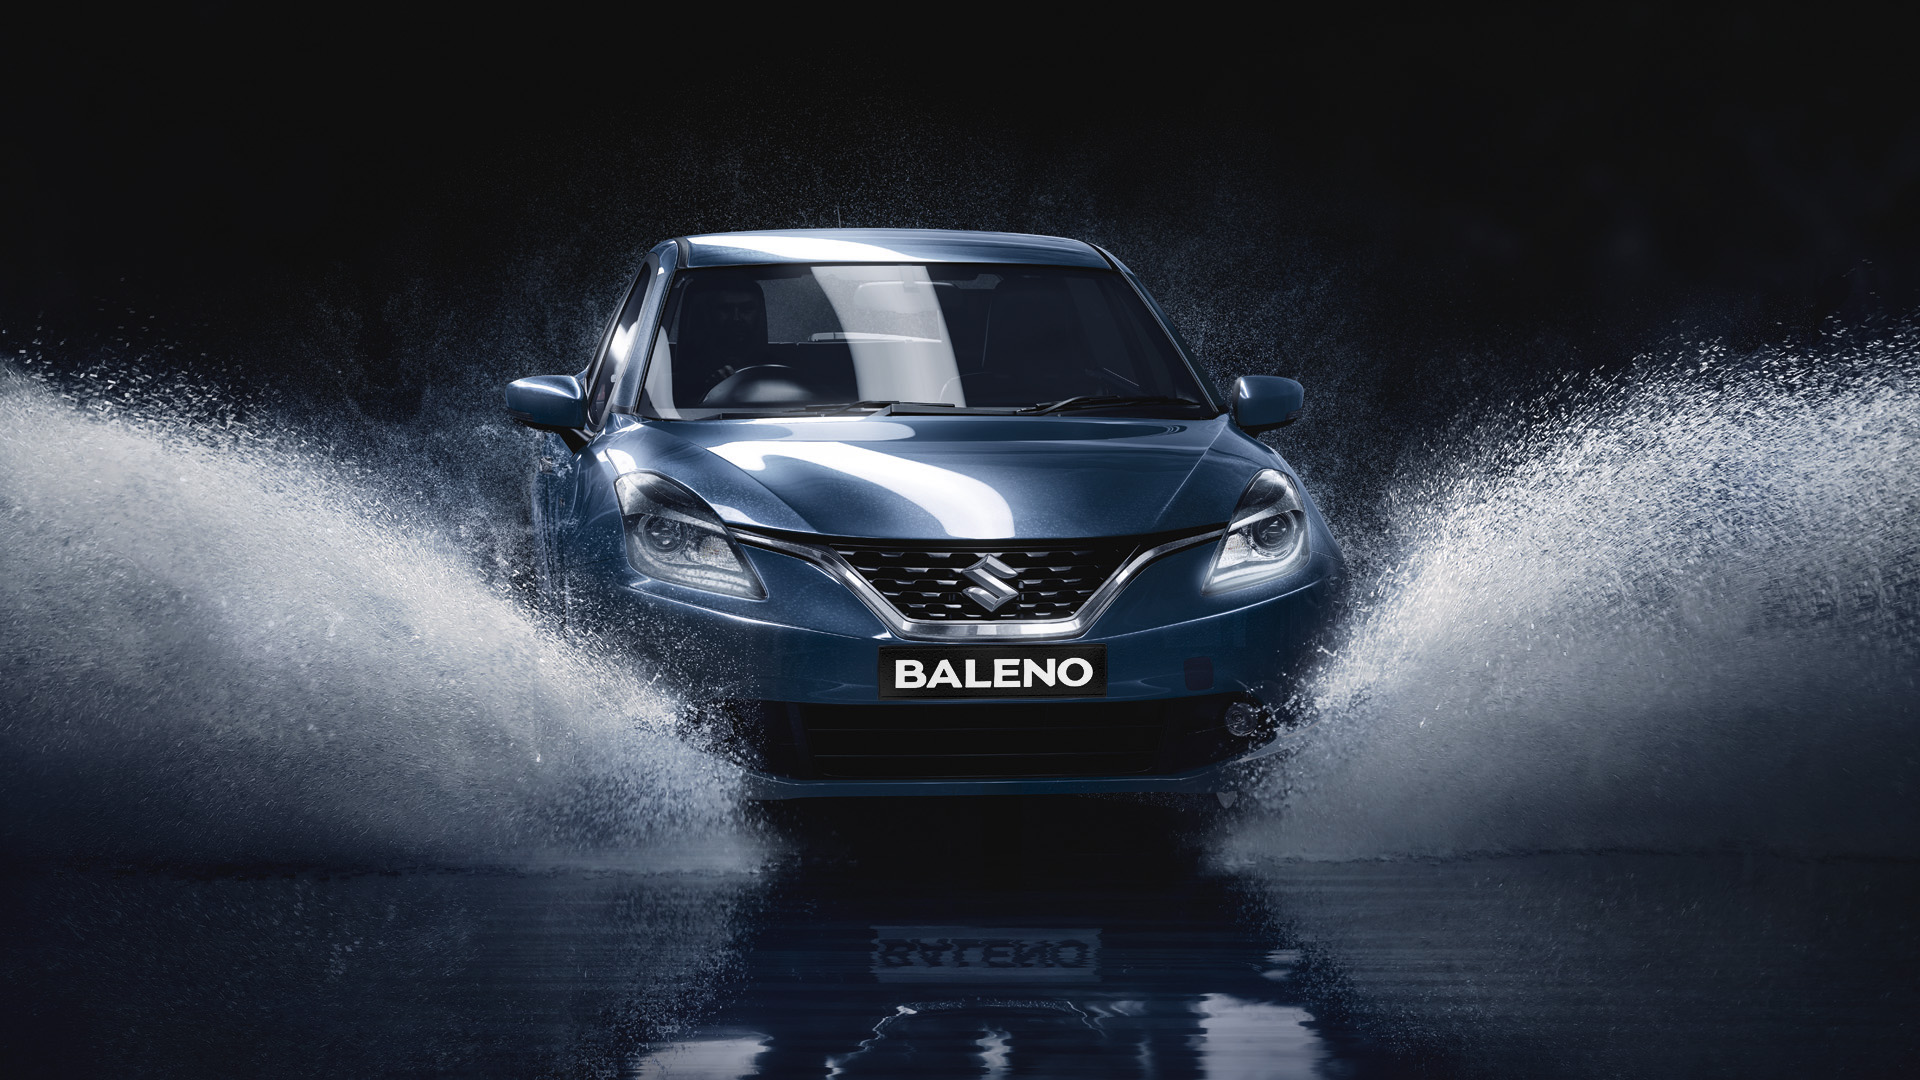 Baleno Images Wallpapers Photos Nexa